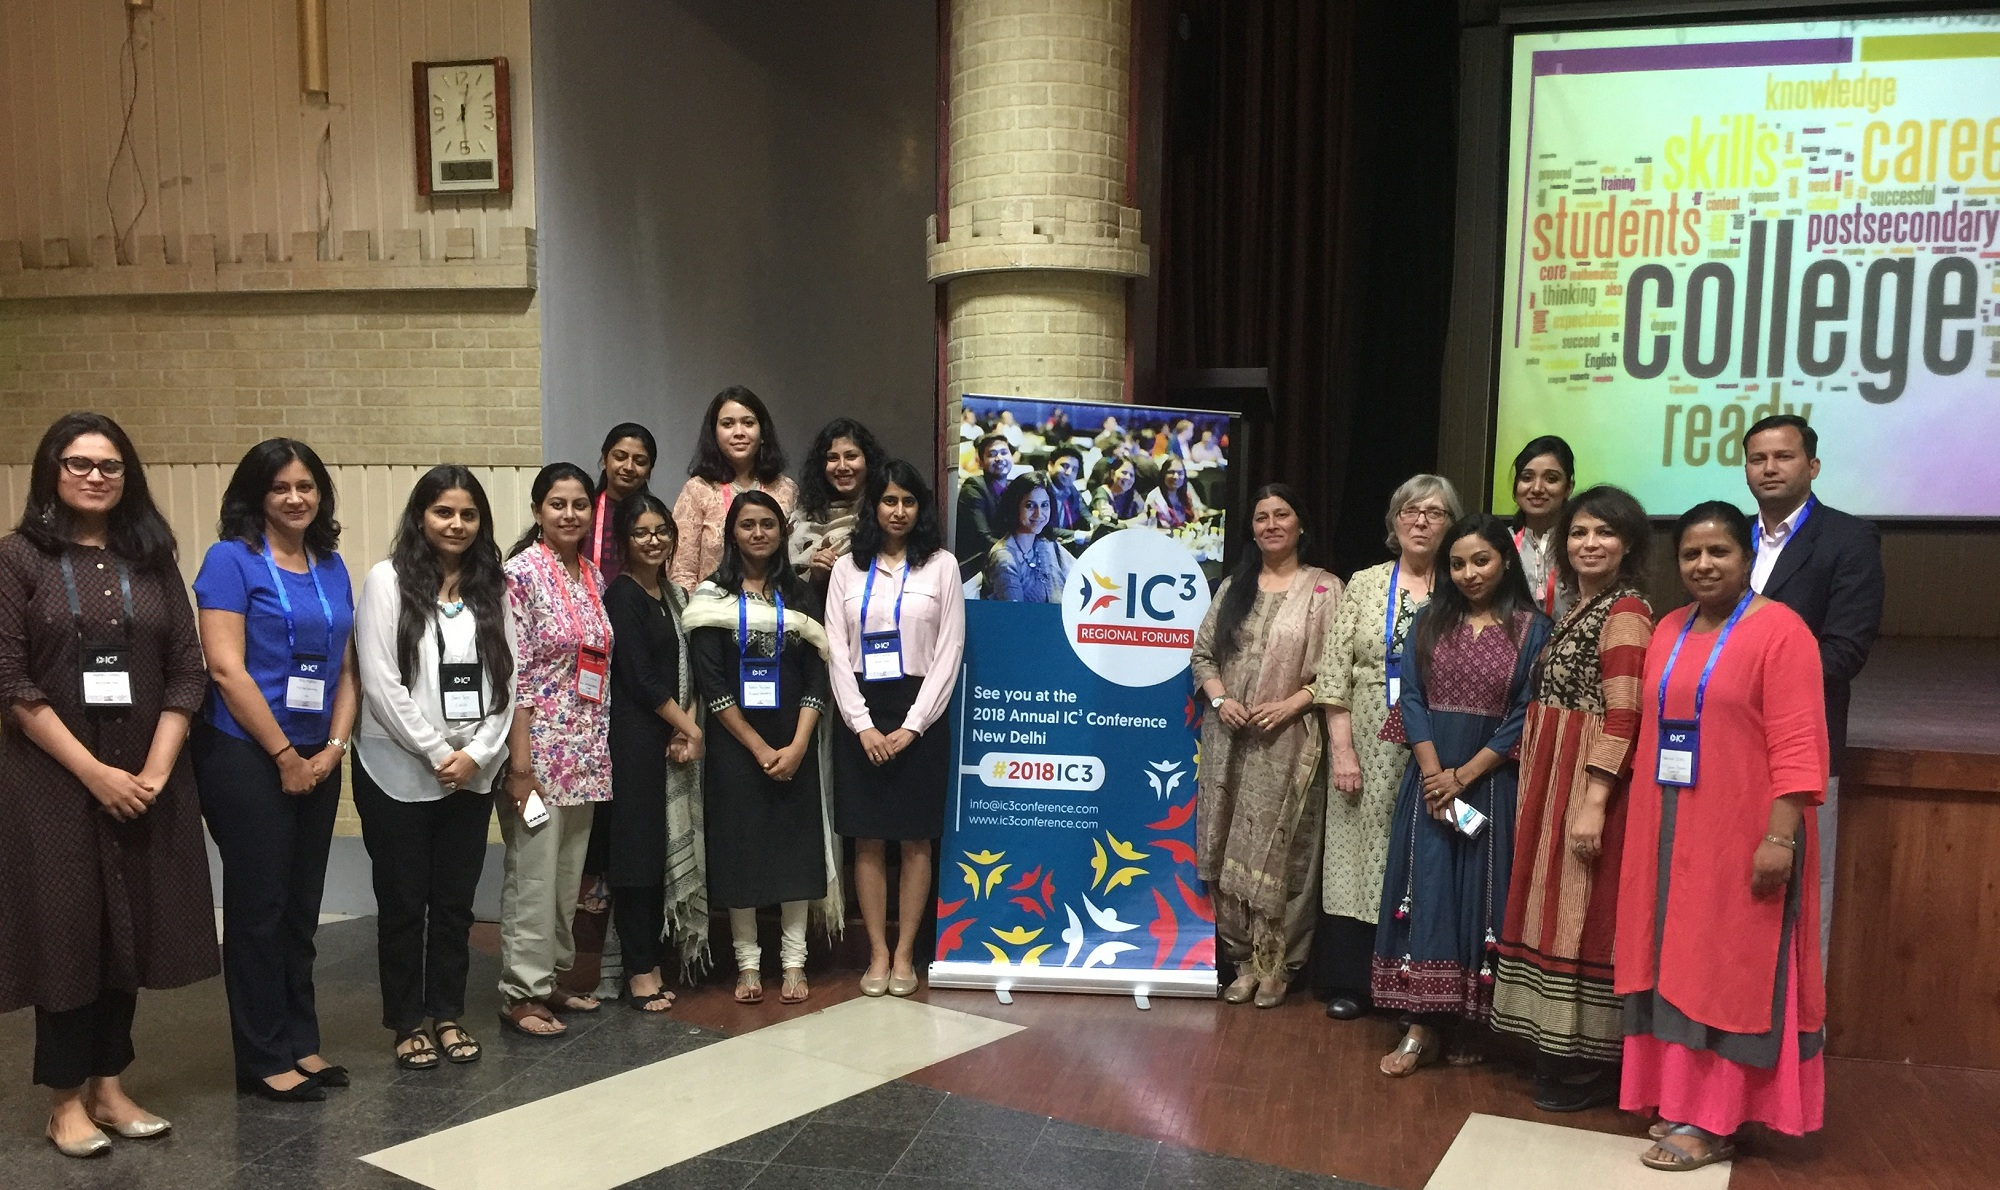 Sanskar faculty attends 2018 IC3 Regional Forum - Jaipur